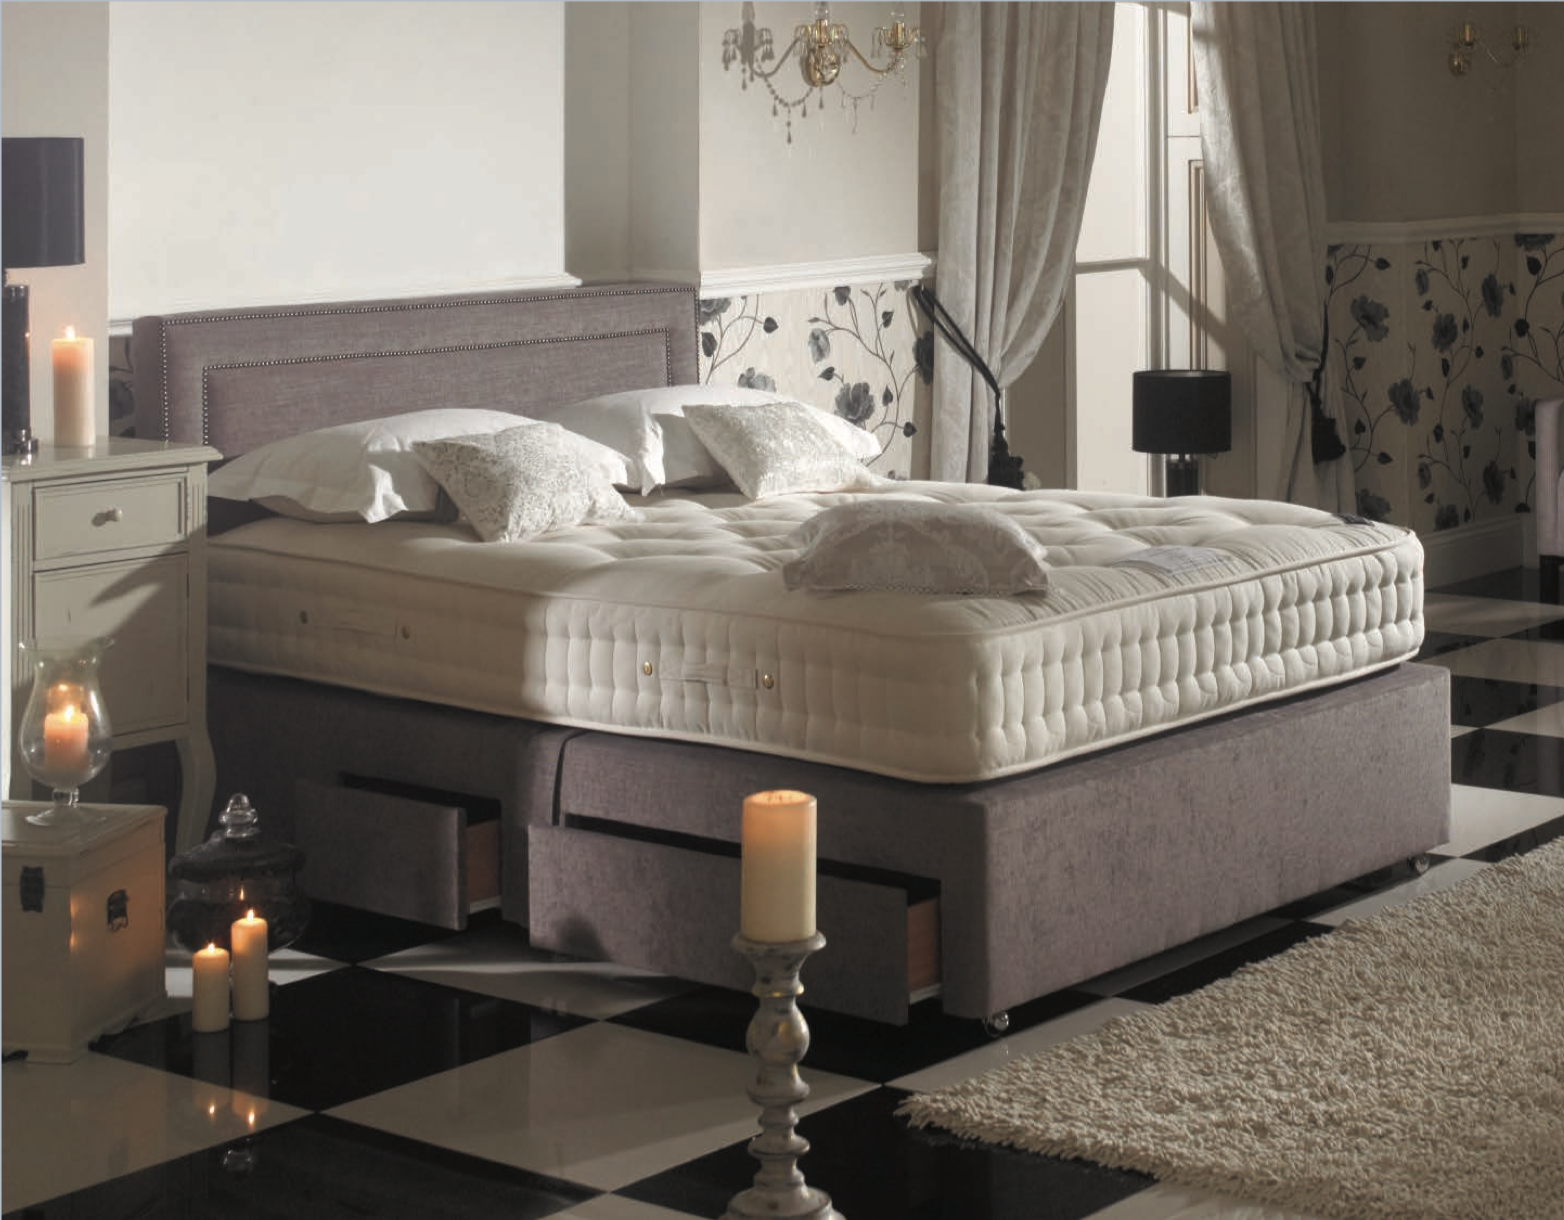 Grey 4 drawer divan base with studded headboard and mattress